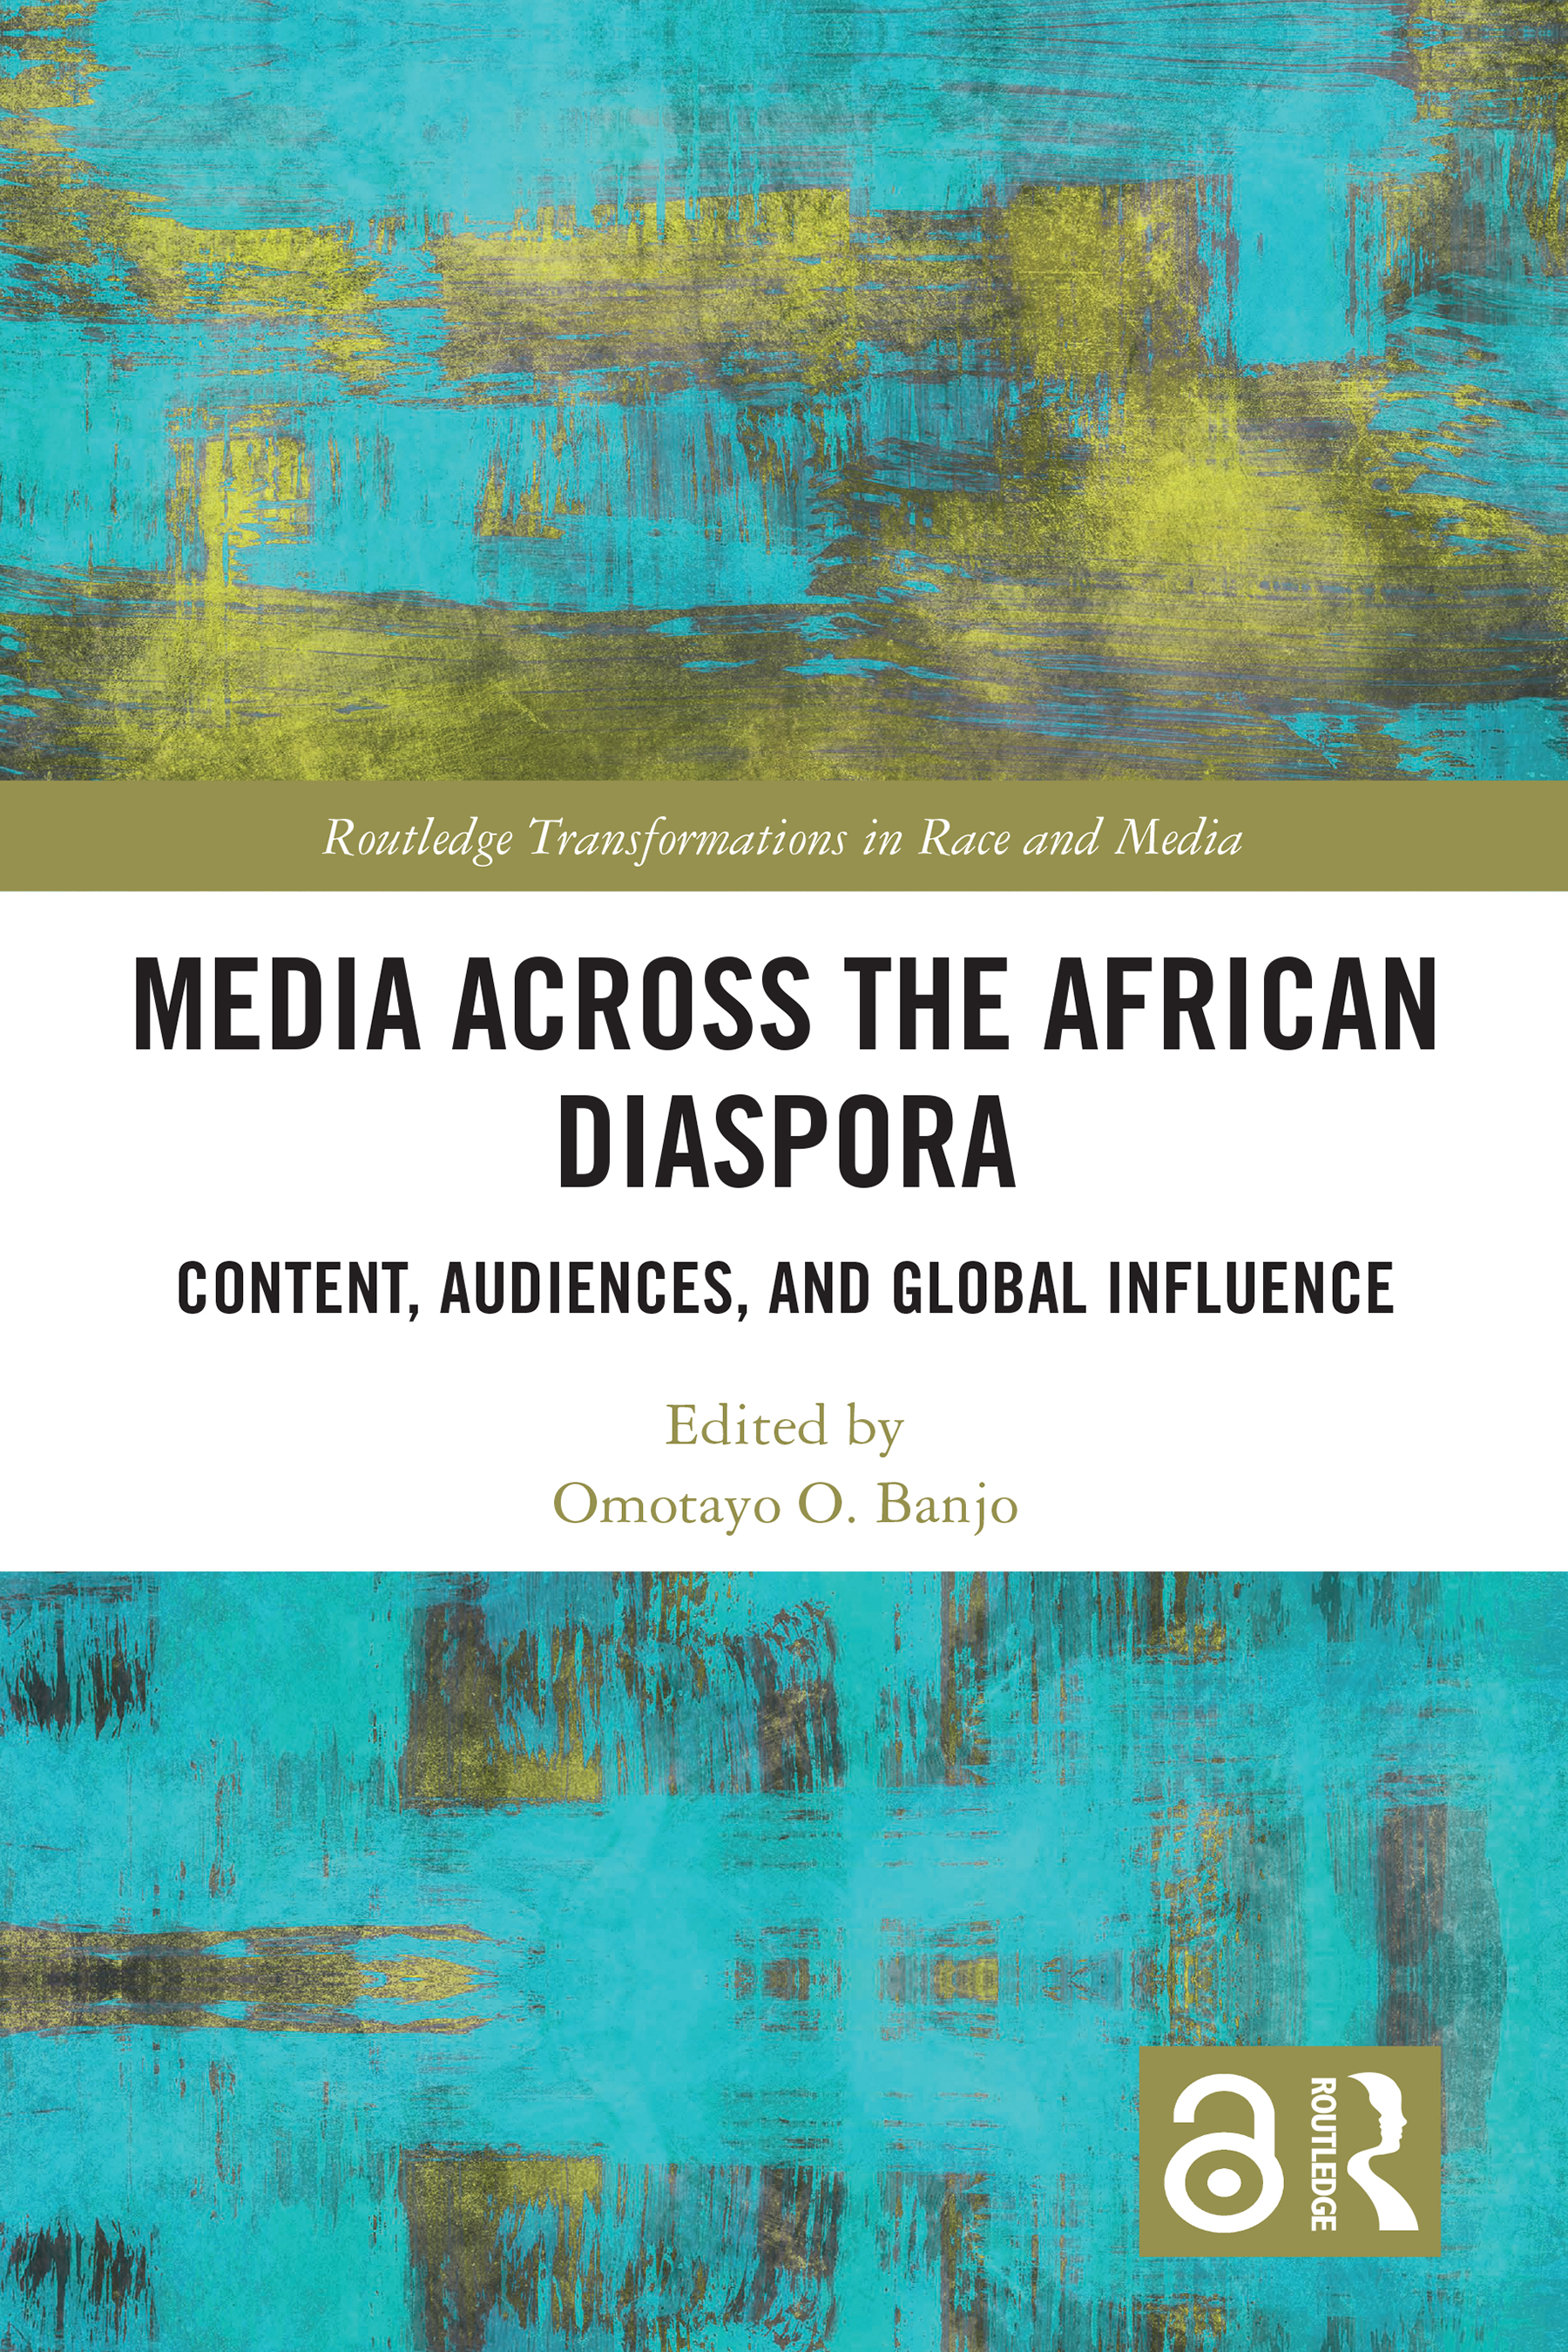 Media Across the African Diaspora : Content, Audiences, and Influence, teal and gold cover with white rectangle, white, black, and gold text